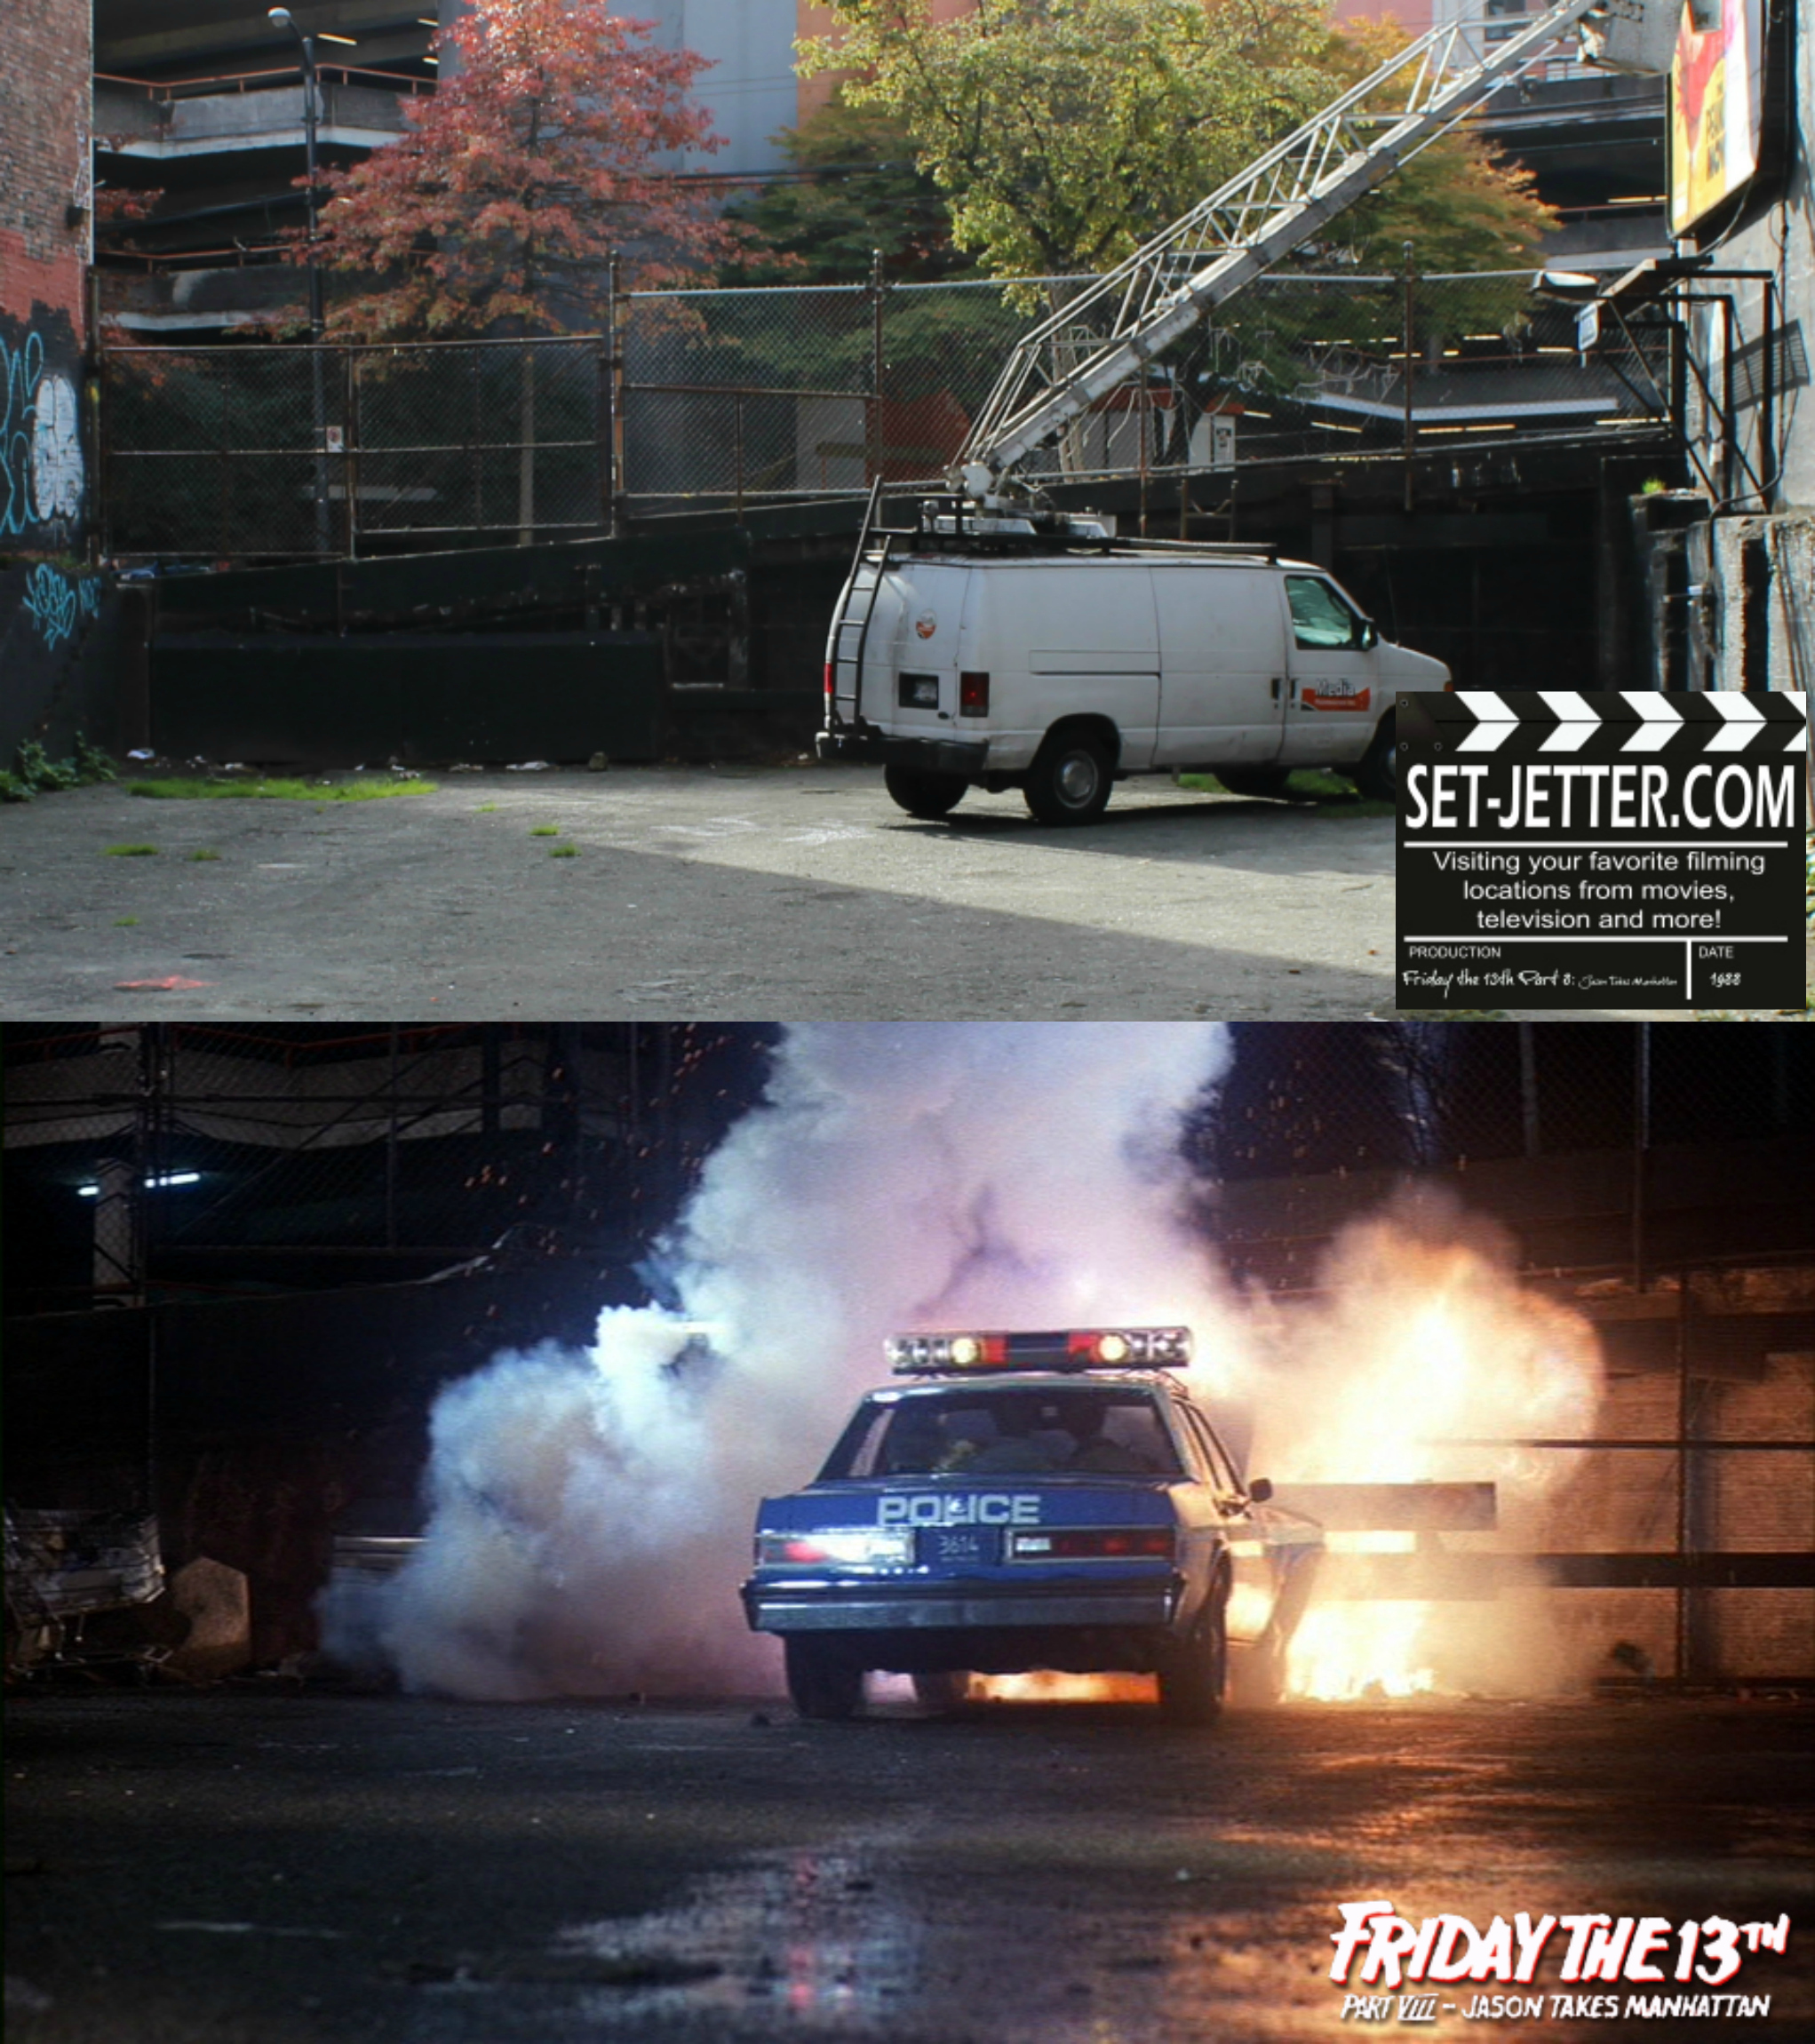 Friday the 13th Part 8 comparison 51.jpg